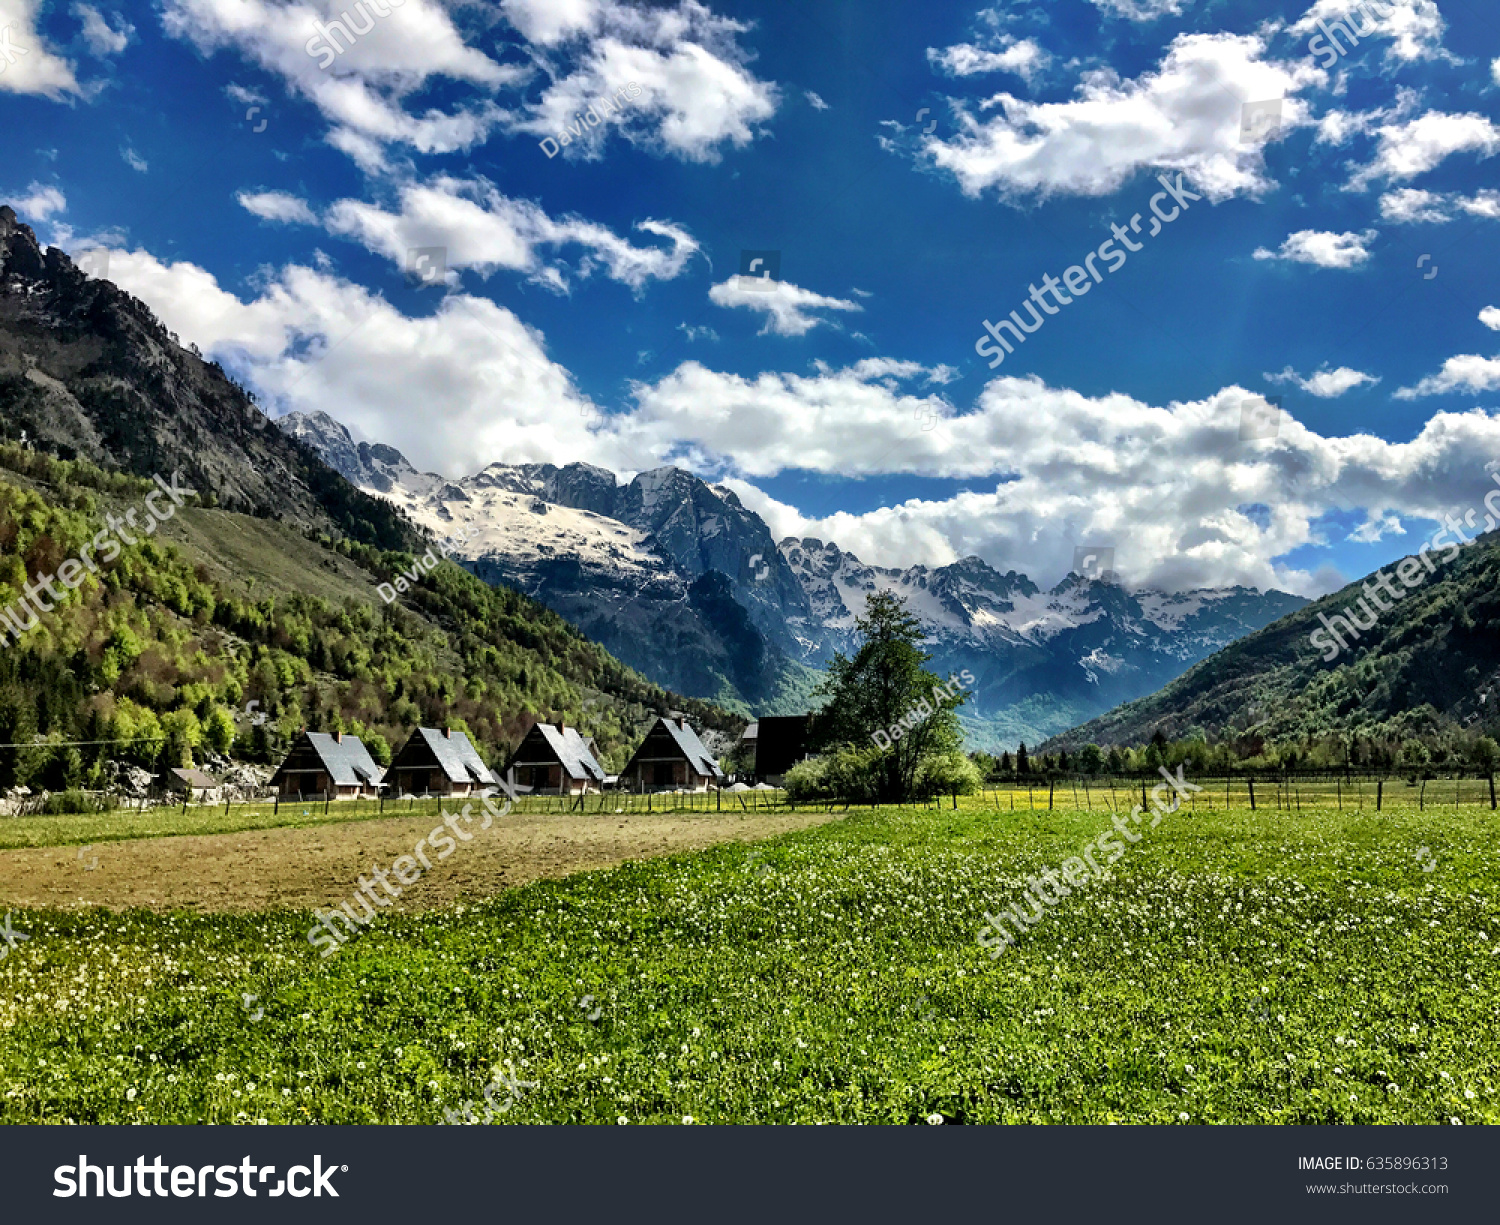 Wonderful Mountain landscape in Valbona Albania #635896313